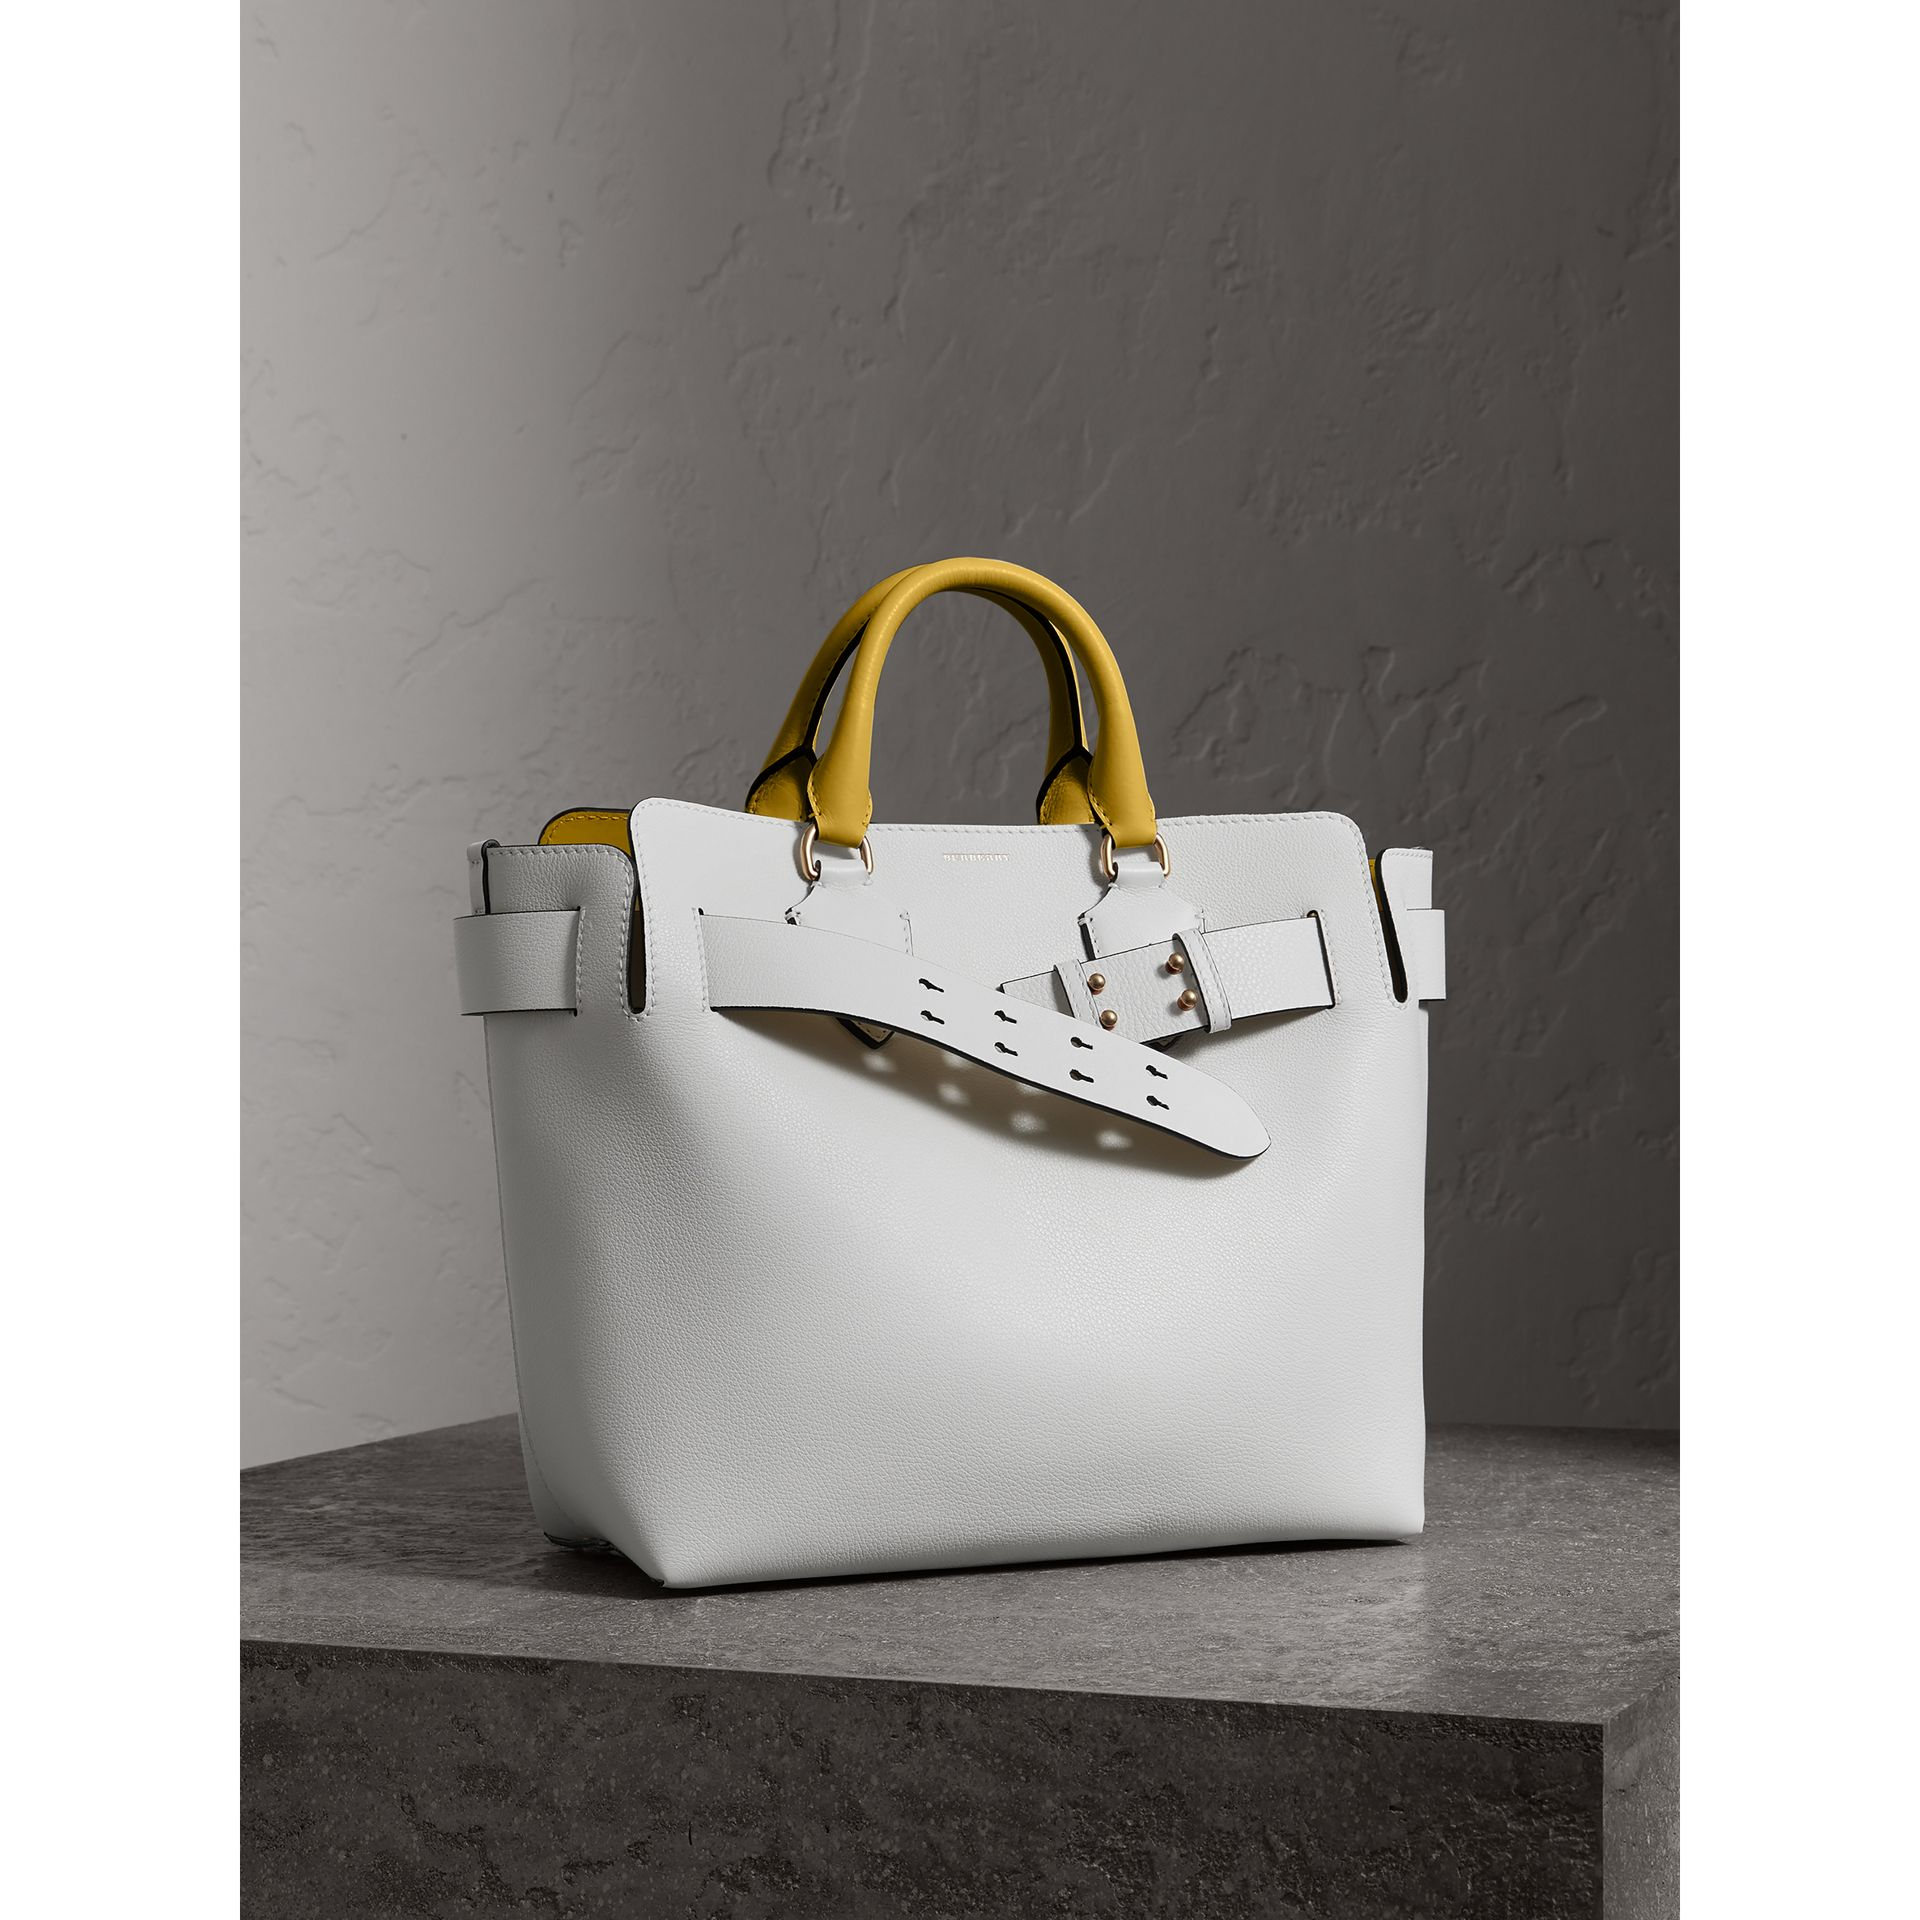 Sac The Belt moyen en cuir (Blanc Craie/jaune) - Femme | Burberry Canada - photo de la galerie 5